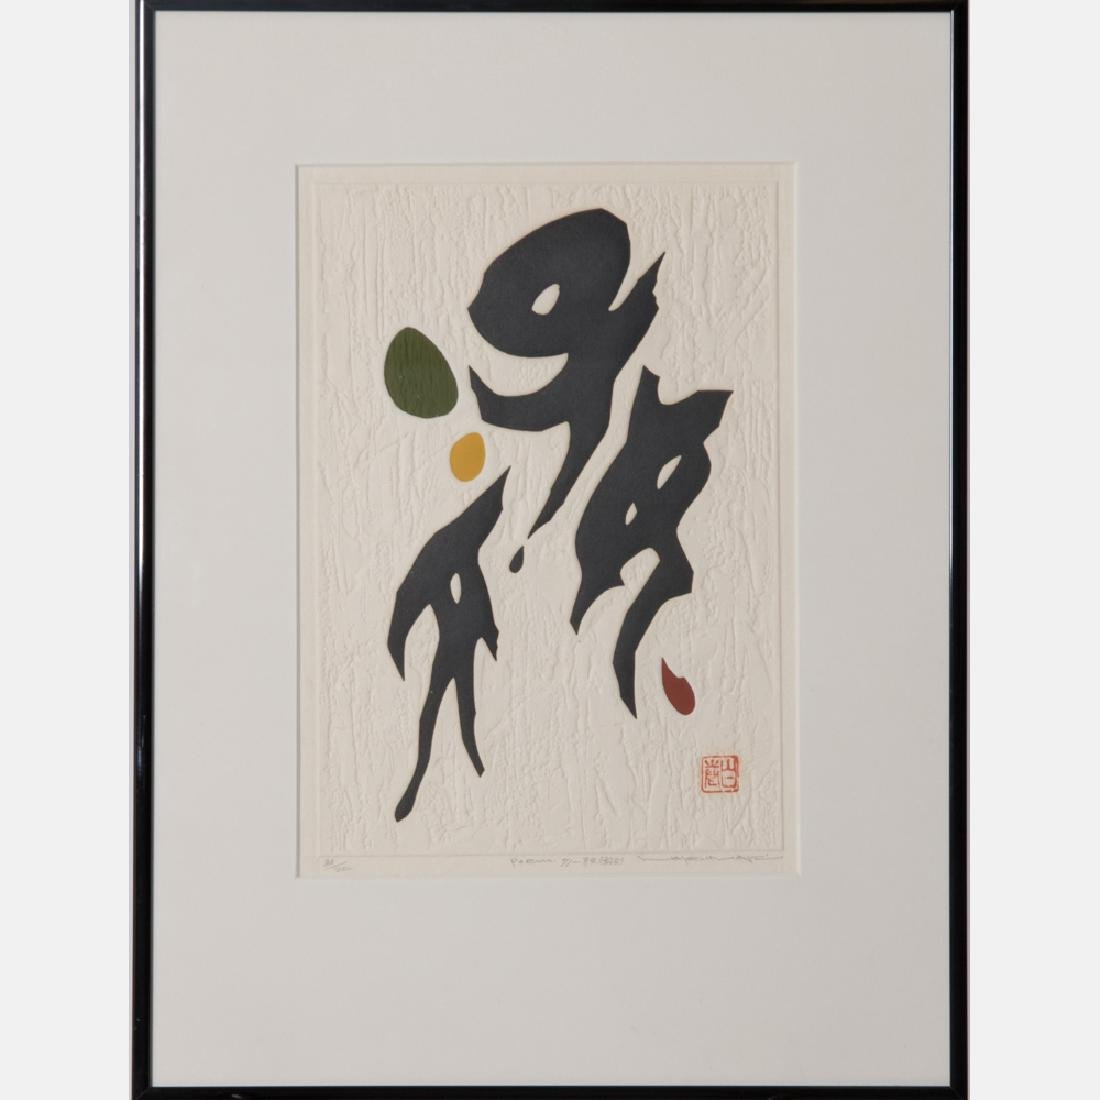 Haku Maki (1924-2000) Poem 71-84, Embossed woodcut in